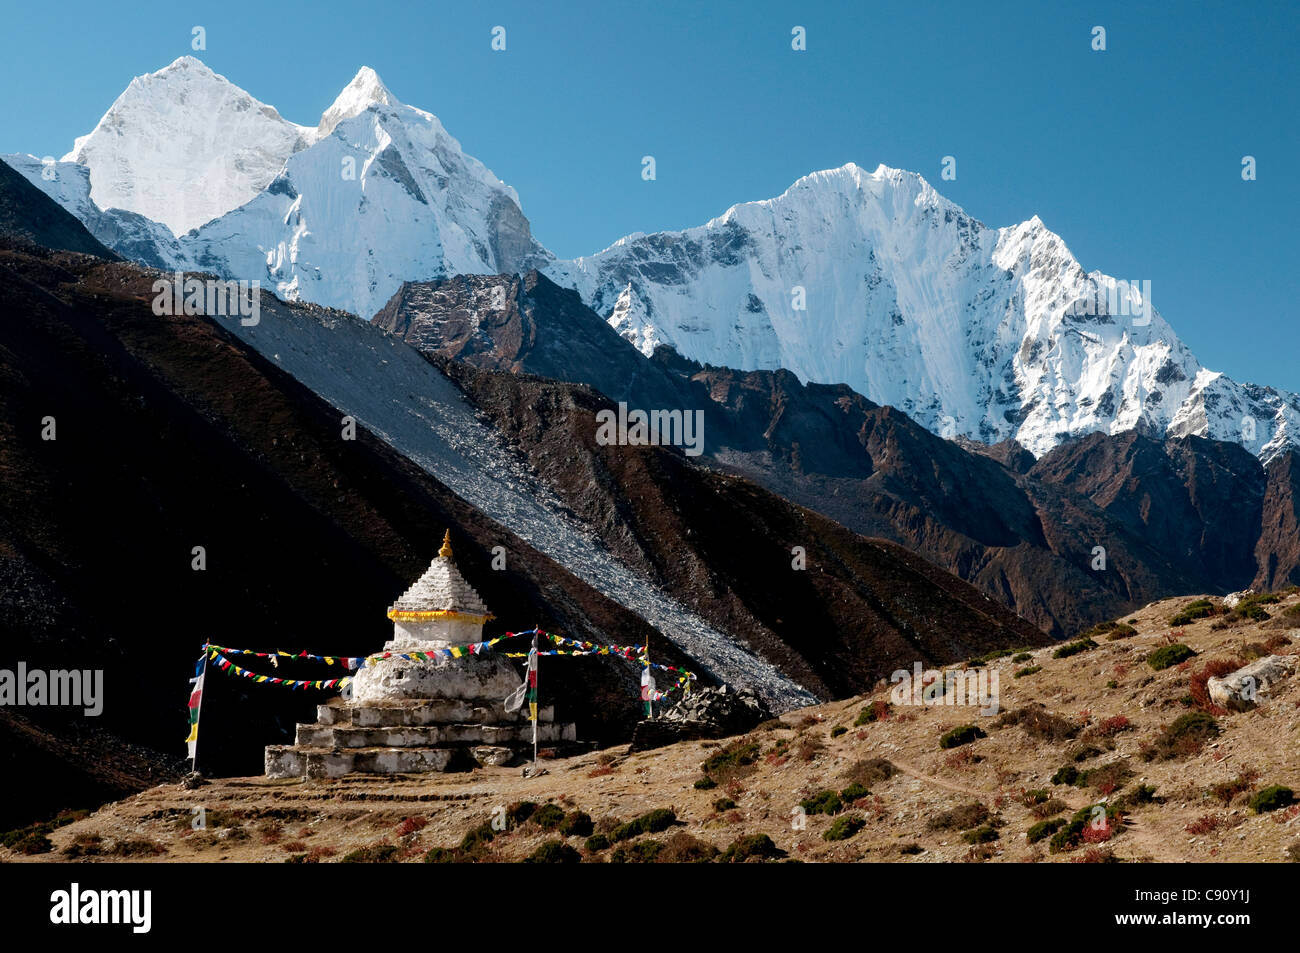 Thamserku and the peak of Kaing Taiga or Kangtega tower over the route to Everest Base Camp in the Solu Khumbu region. - Stock Image